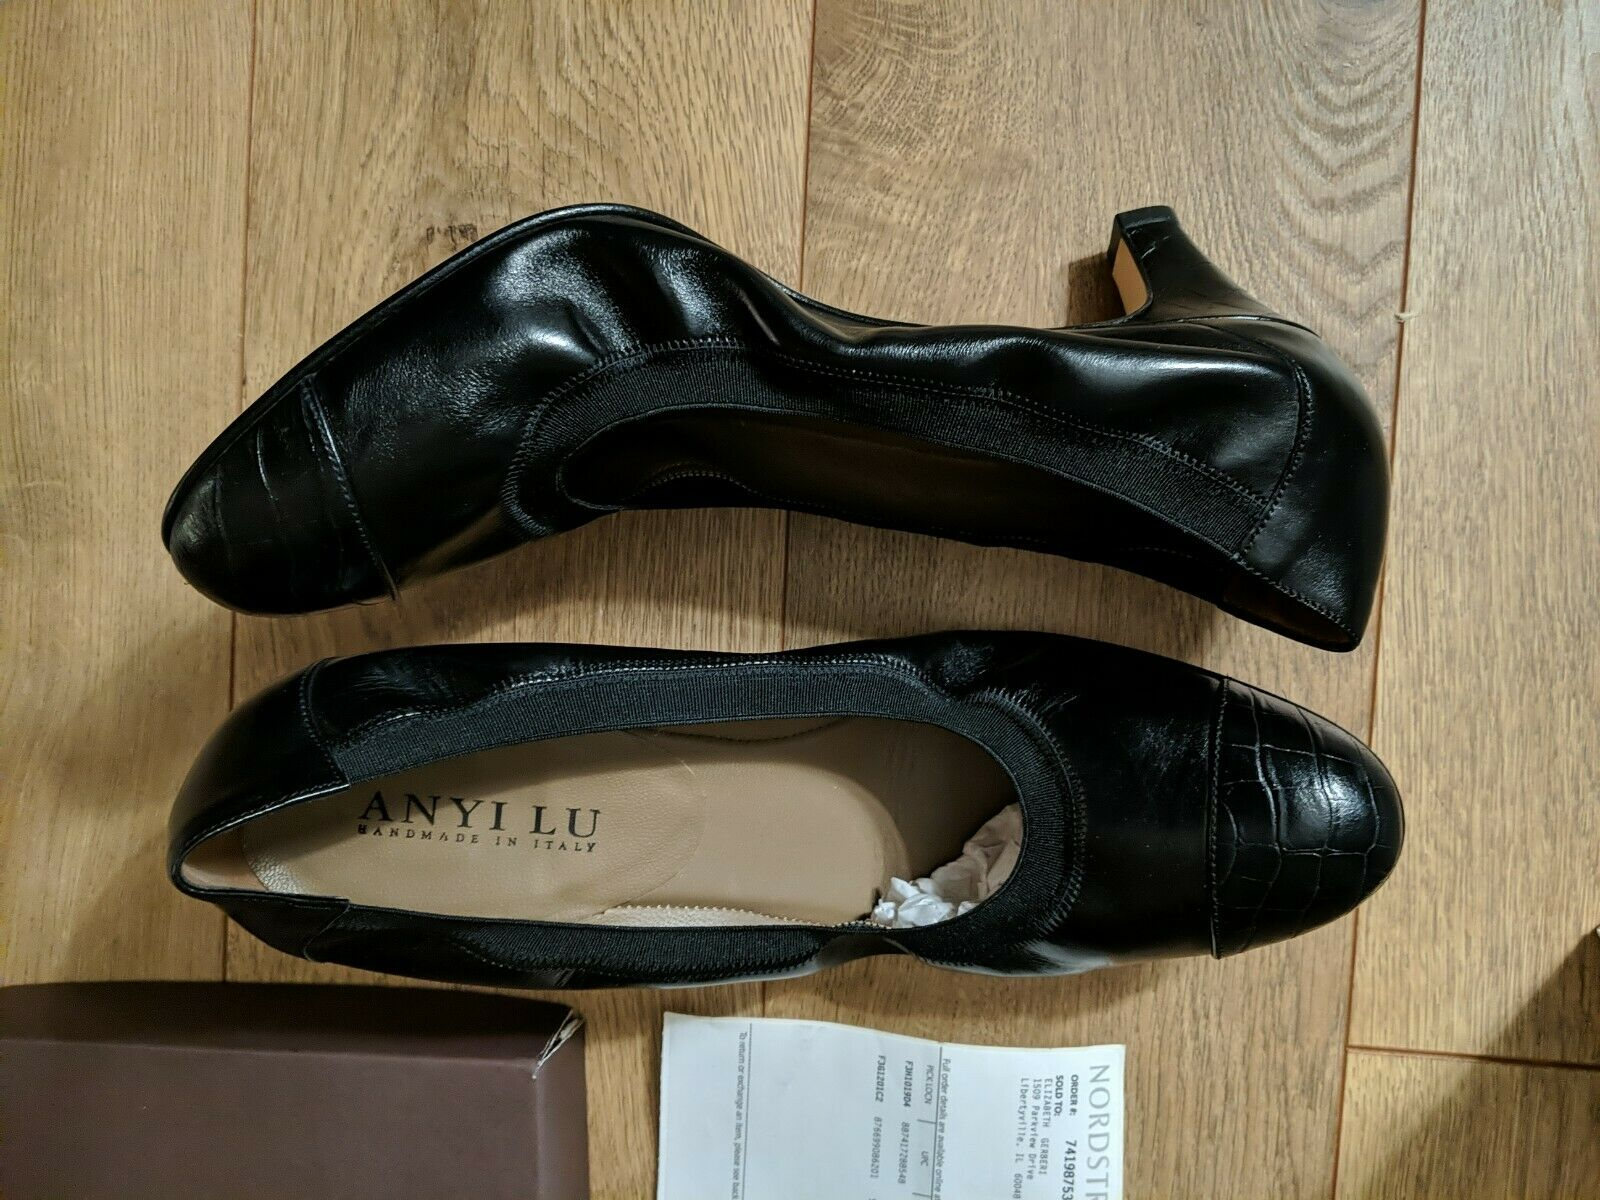 Anyi Lu Heels Size 42.5 Black Payge ITALY NEW IN BOX ALL LEATHER US 11.5 to 12